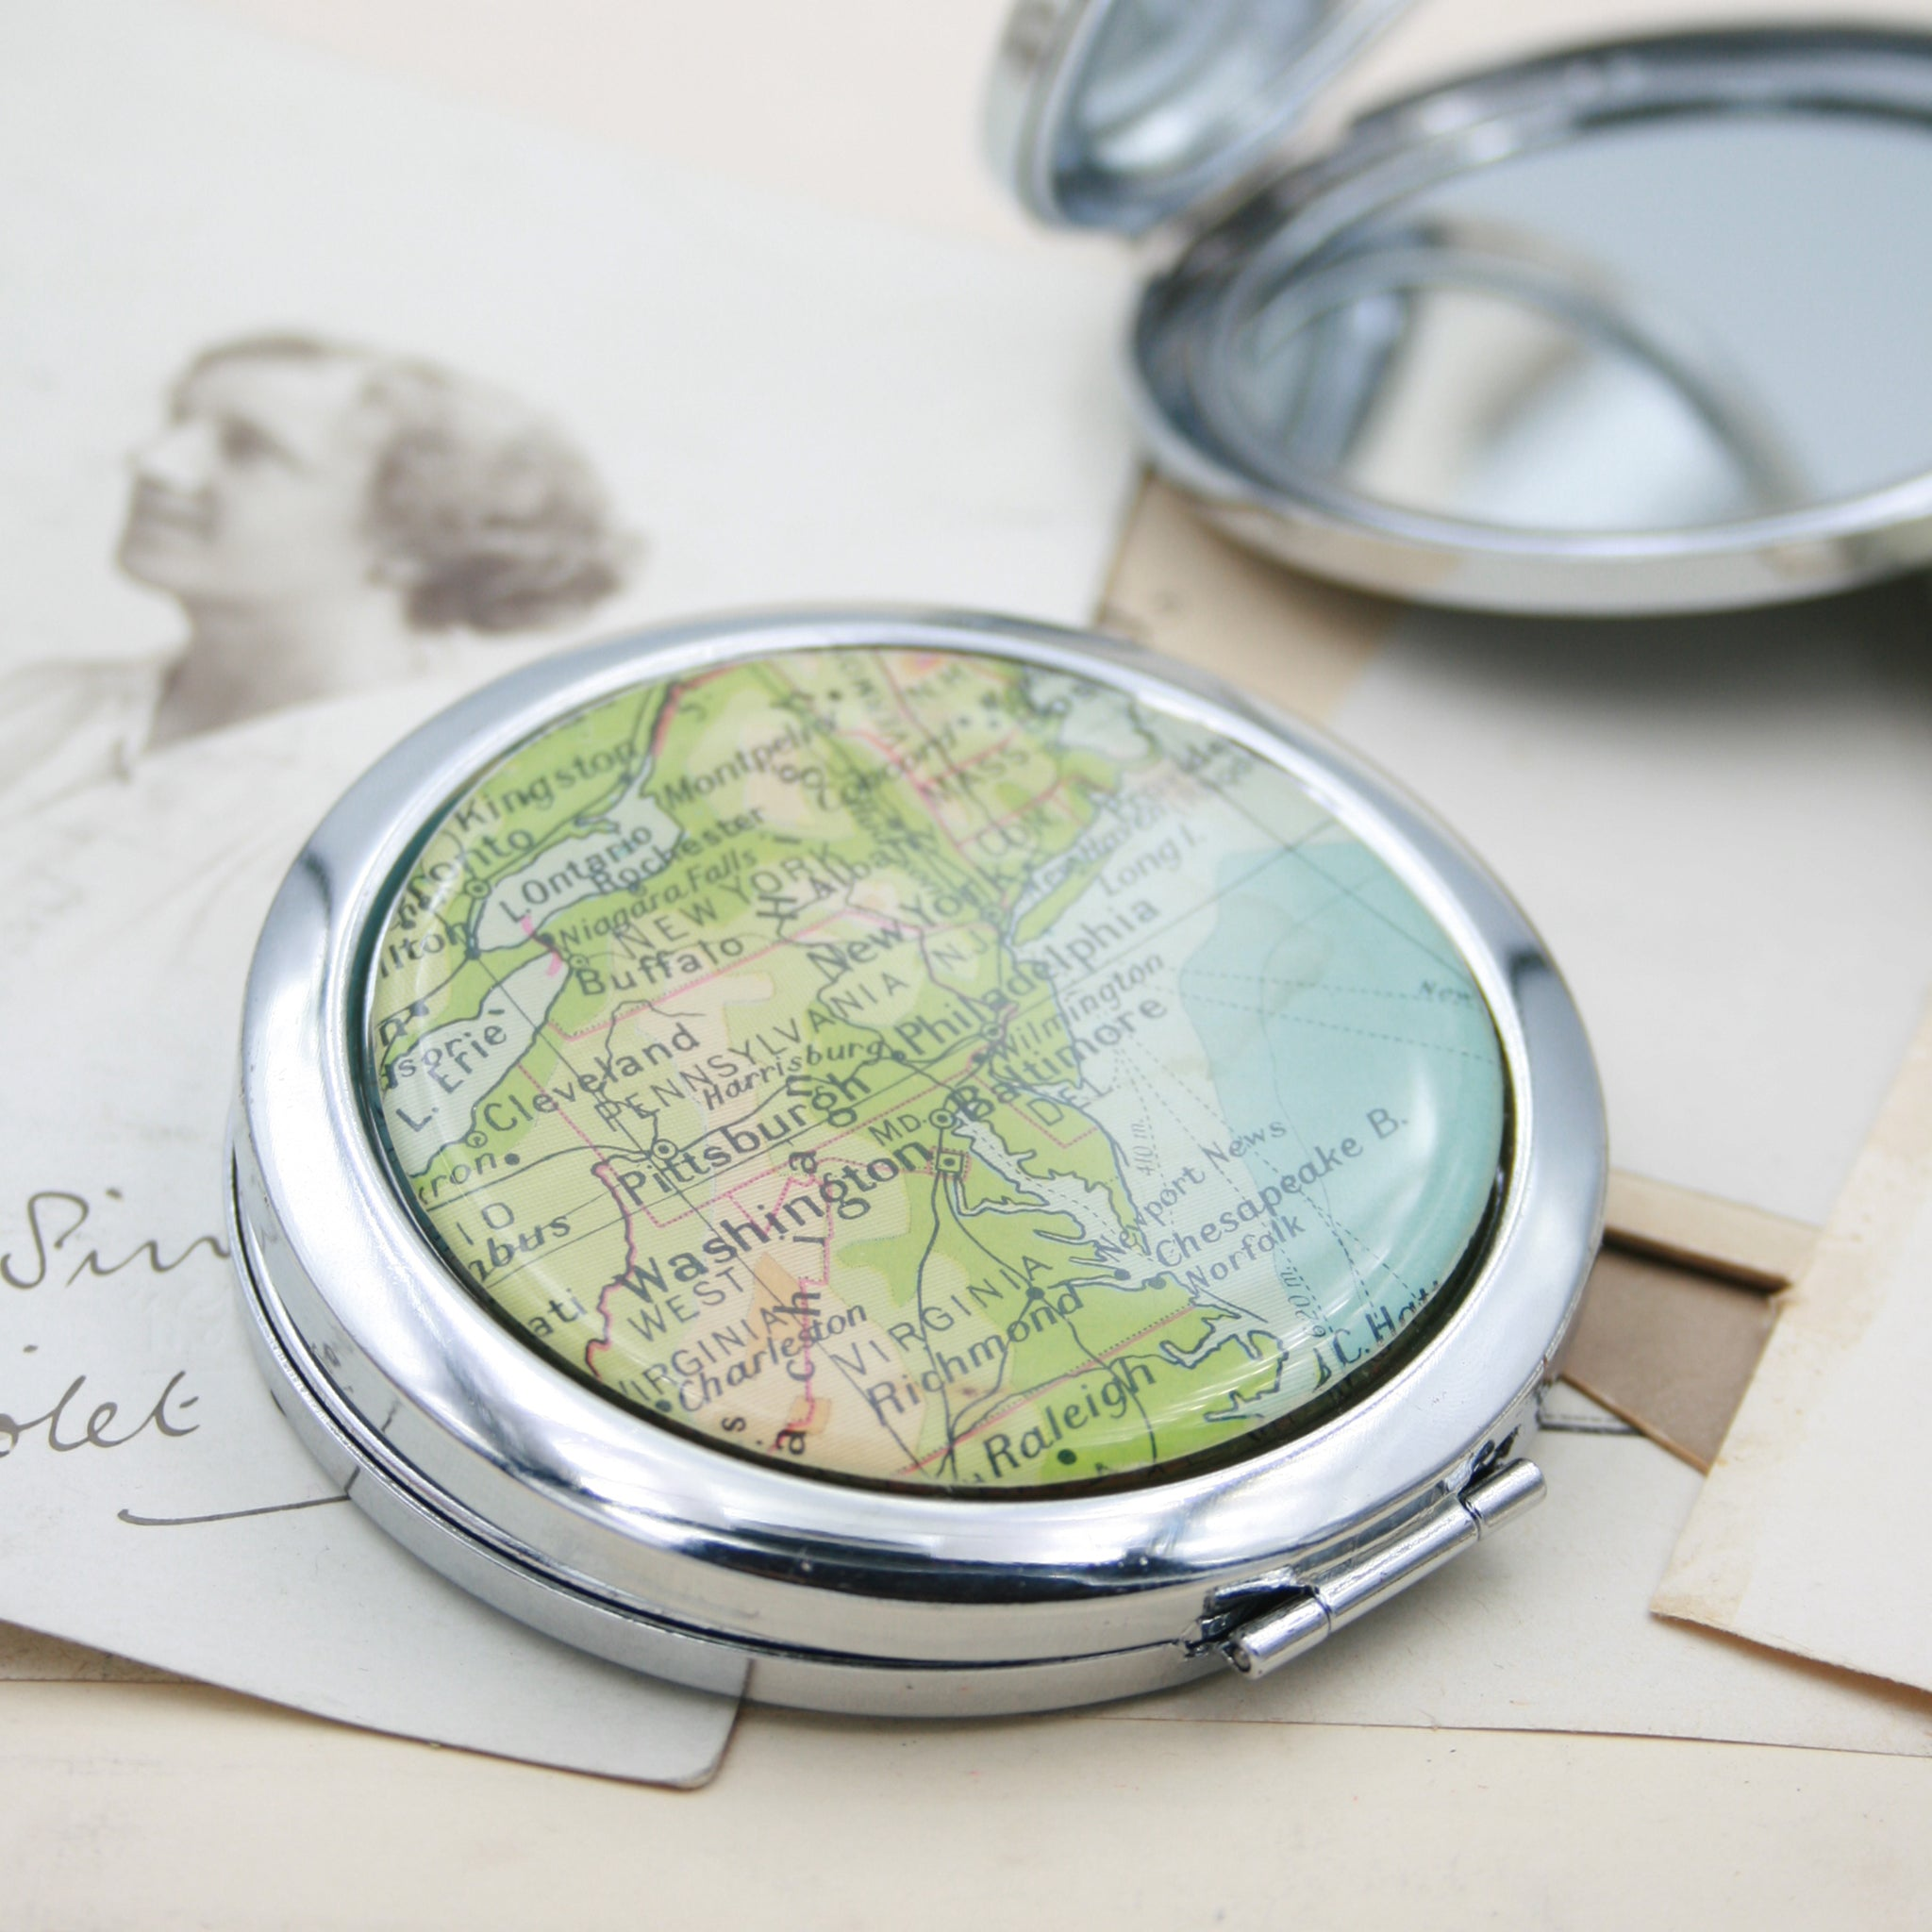 Personalised Compact Mirror in silver color featuring map of New York